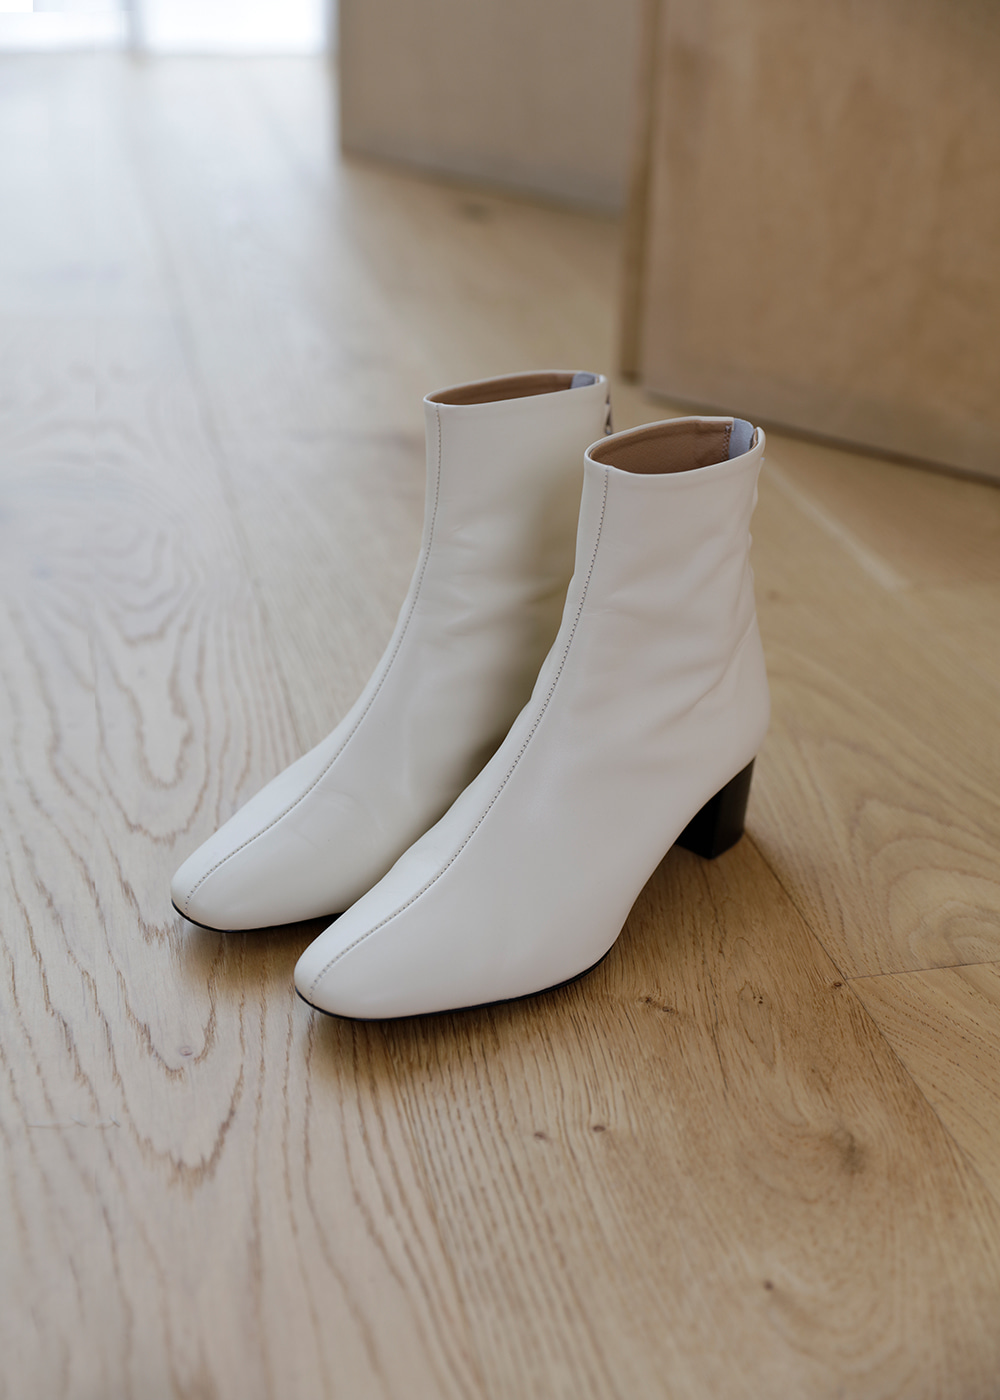 19FW Lead ankle boots (Beige) *주문 후 약 2주 소요됩니다.